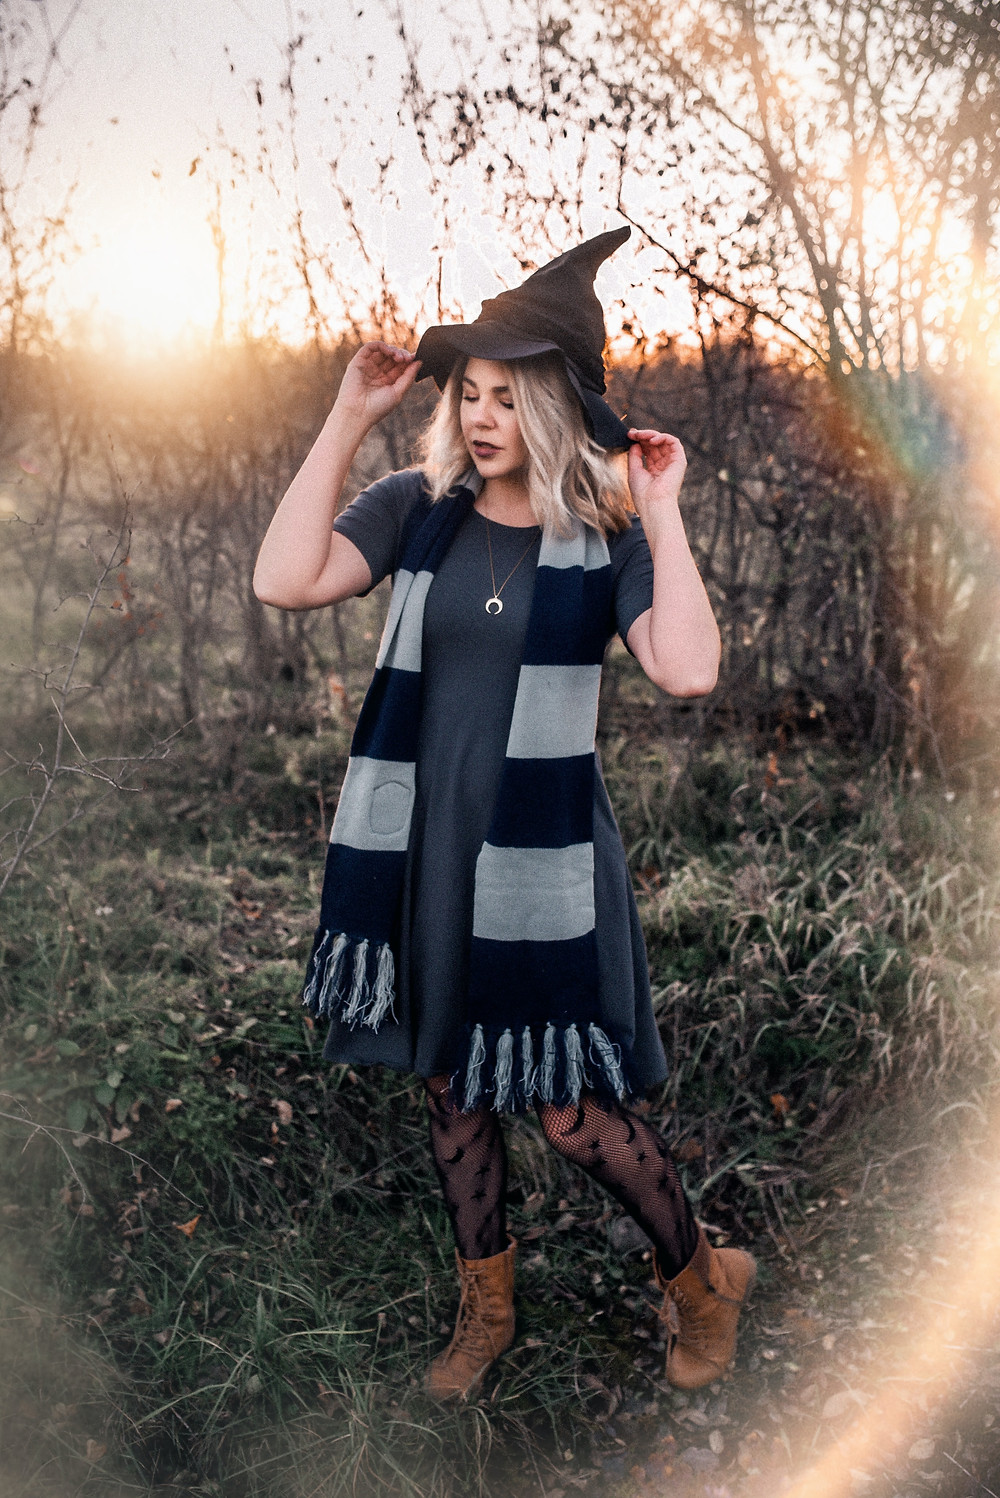 Witches come in all levels and there should not be any shame in those who are baby witches as they are interested to learn and should be welcomed into the universal coven.